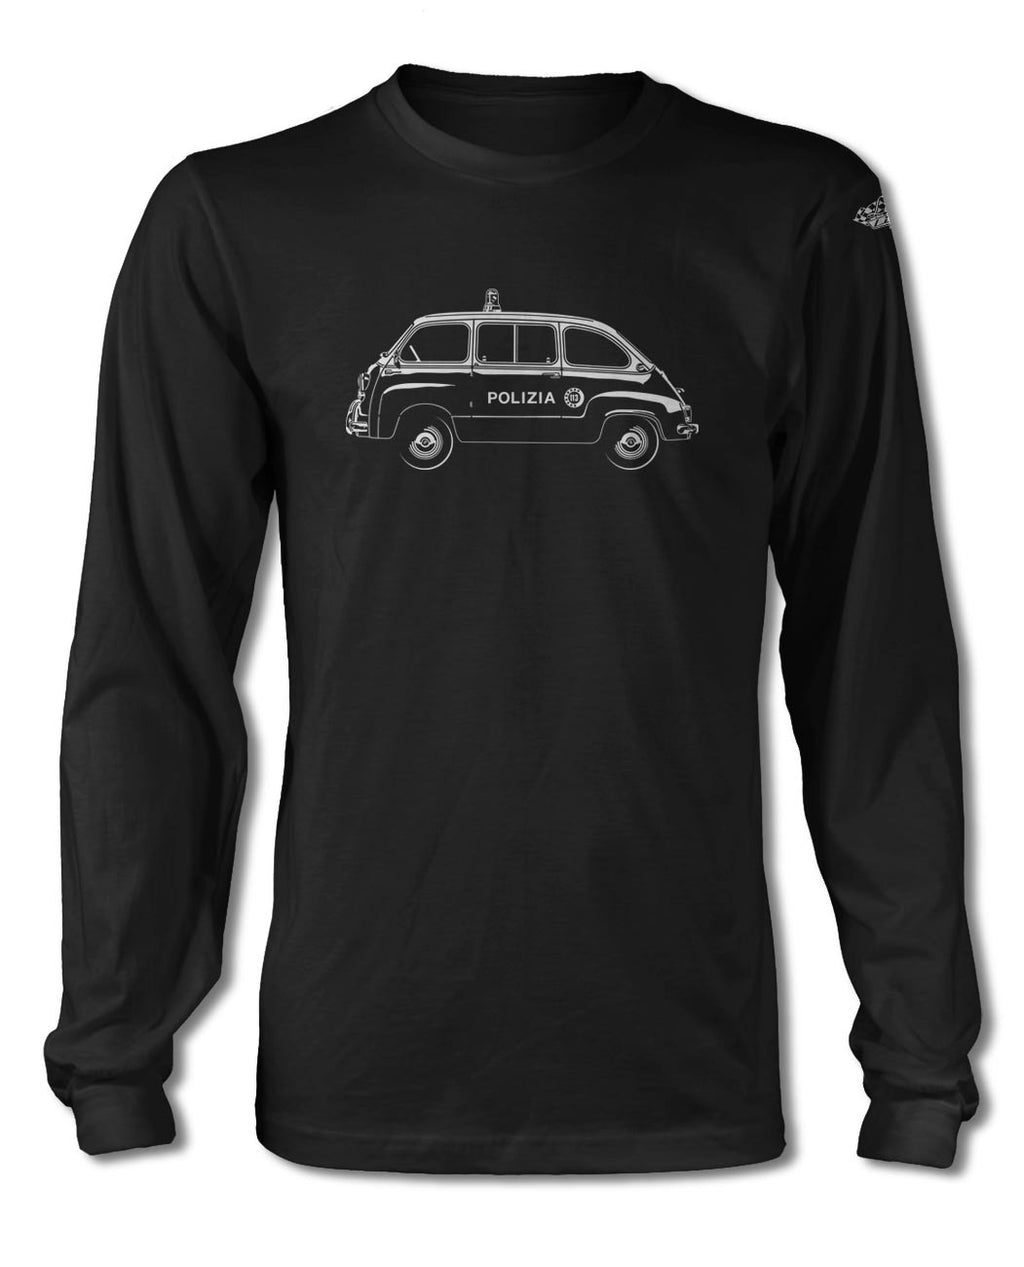 FIAT 600 Multipla Italian Polizia (police) 1956 - 1969 T-Shirt - Long Sleeves - Side View